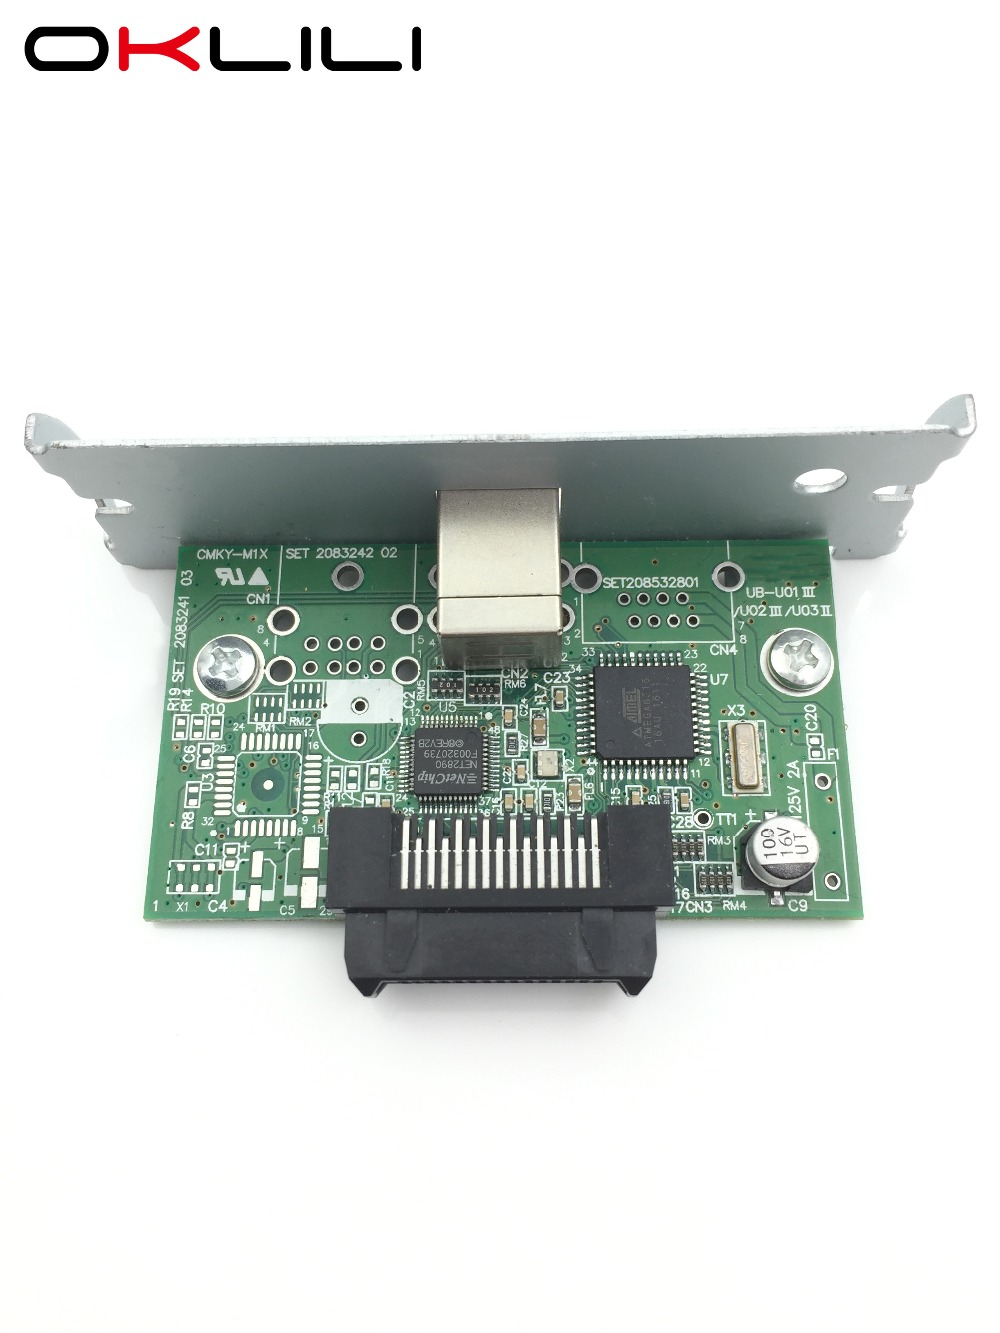 NEW C32C824131 M148E USB Port Interface Card for Epson TM-H5000II H6000IV J7000 J7100 J7500 J7600 L90 T70 T88IV T88V T90 U220 j7500